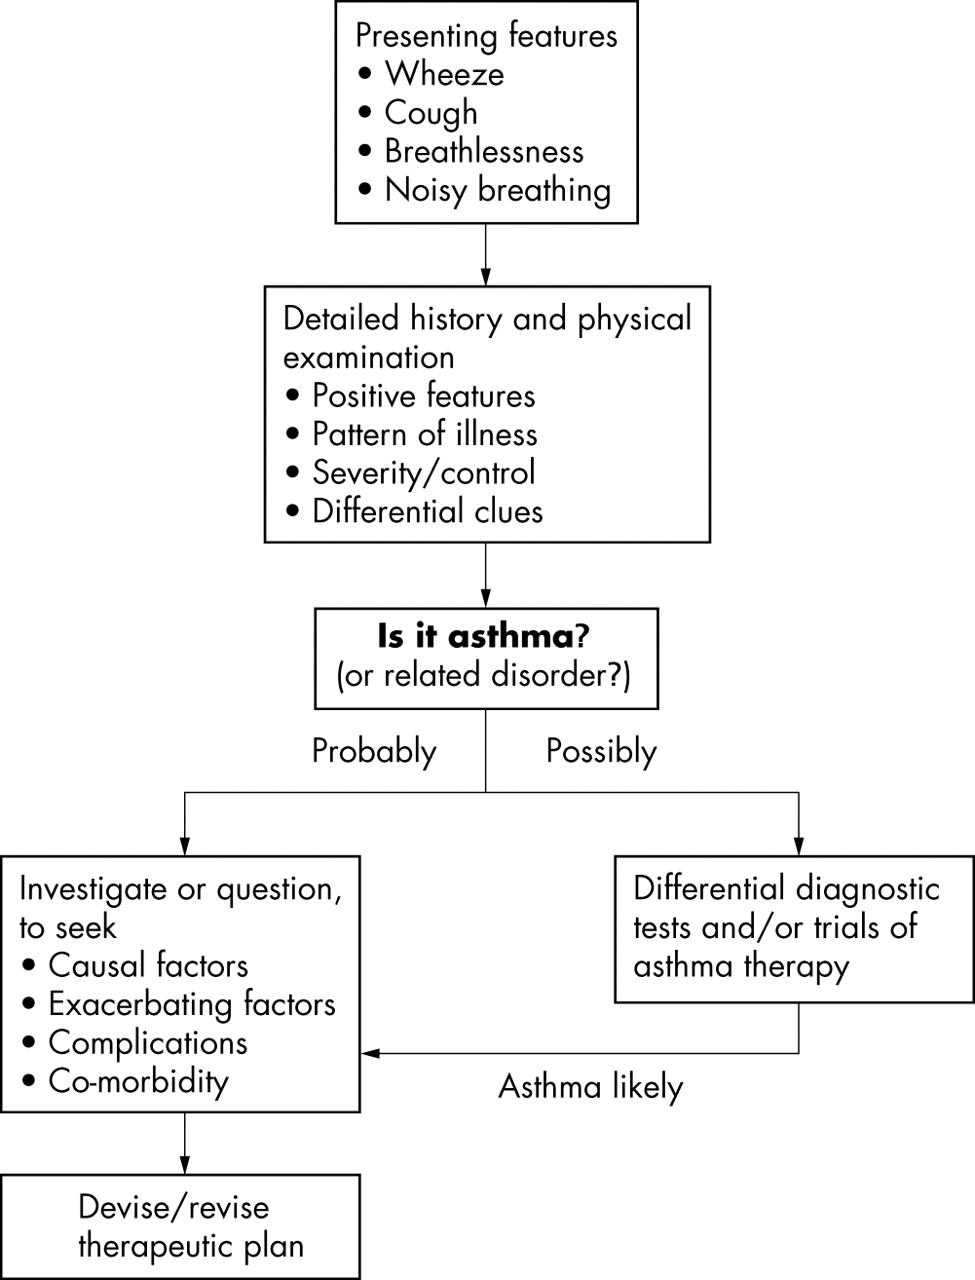 Management of paediatric asthma postgraduate medical journal download figure geenschuldenfo Gallery